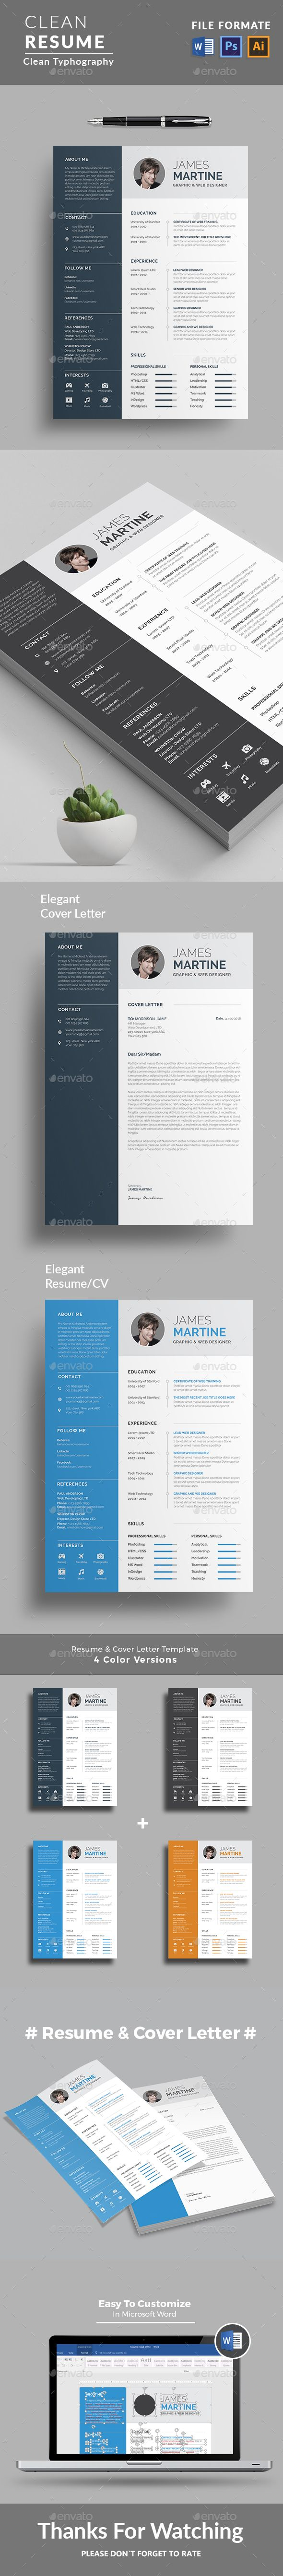 Professional #Resume Word/Indesign Template. Elegant page designs ...